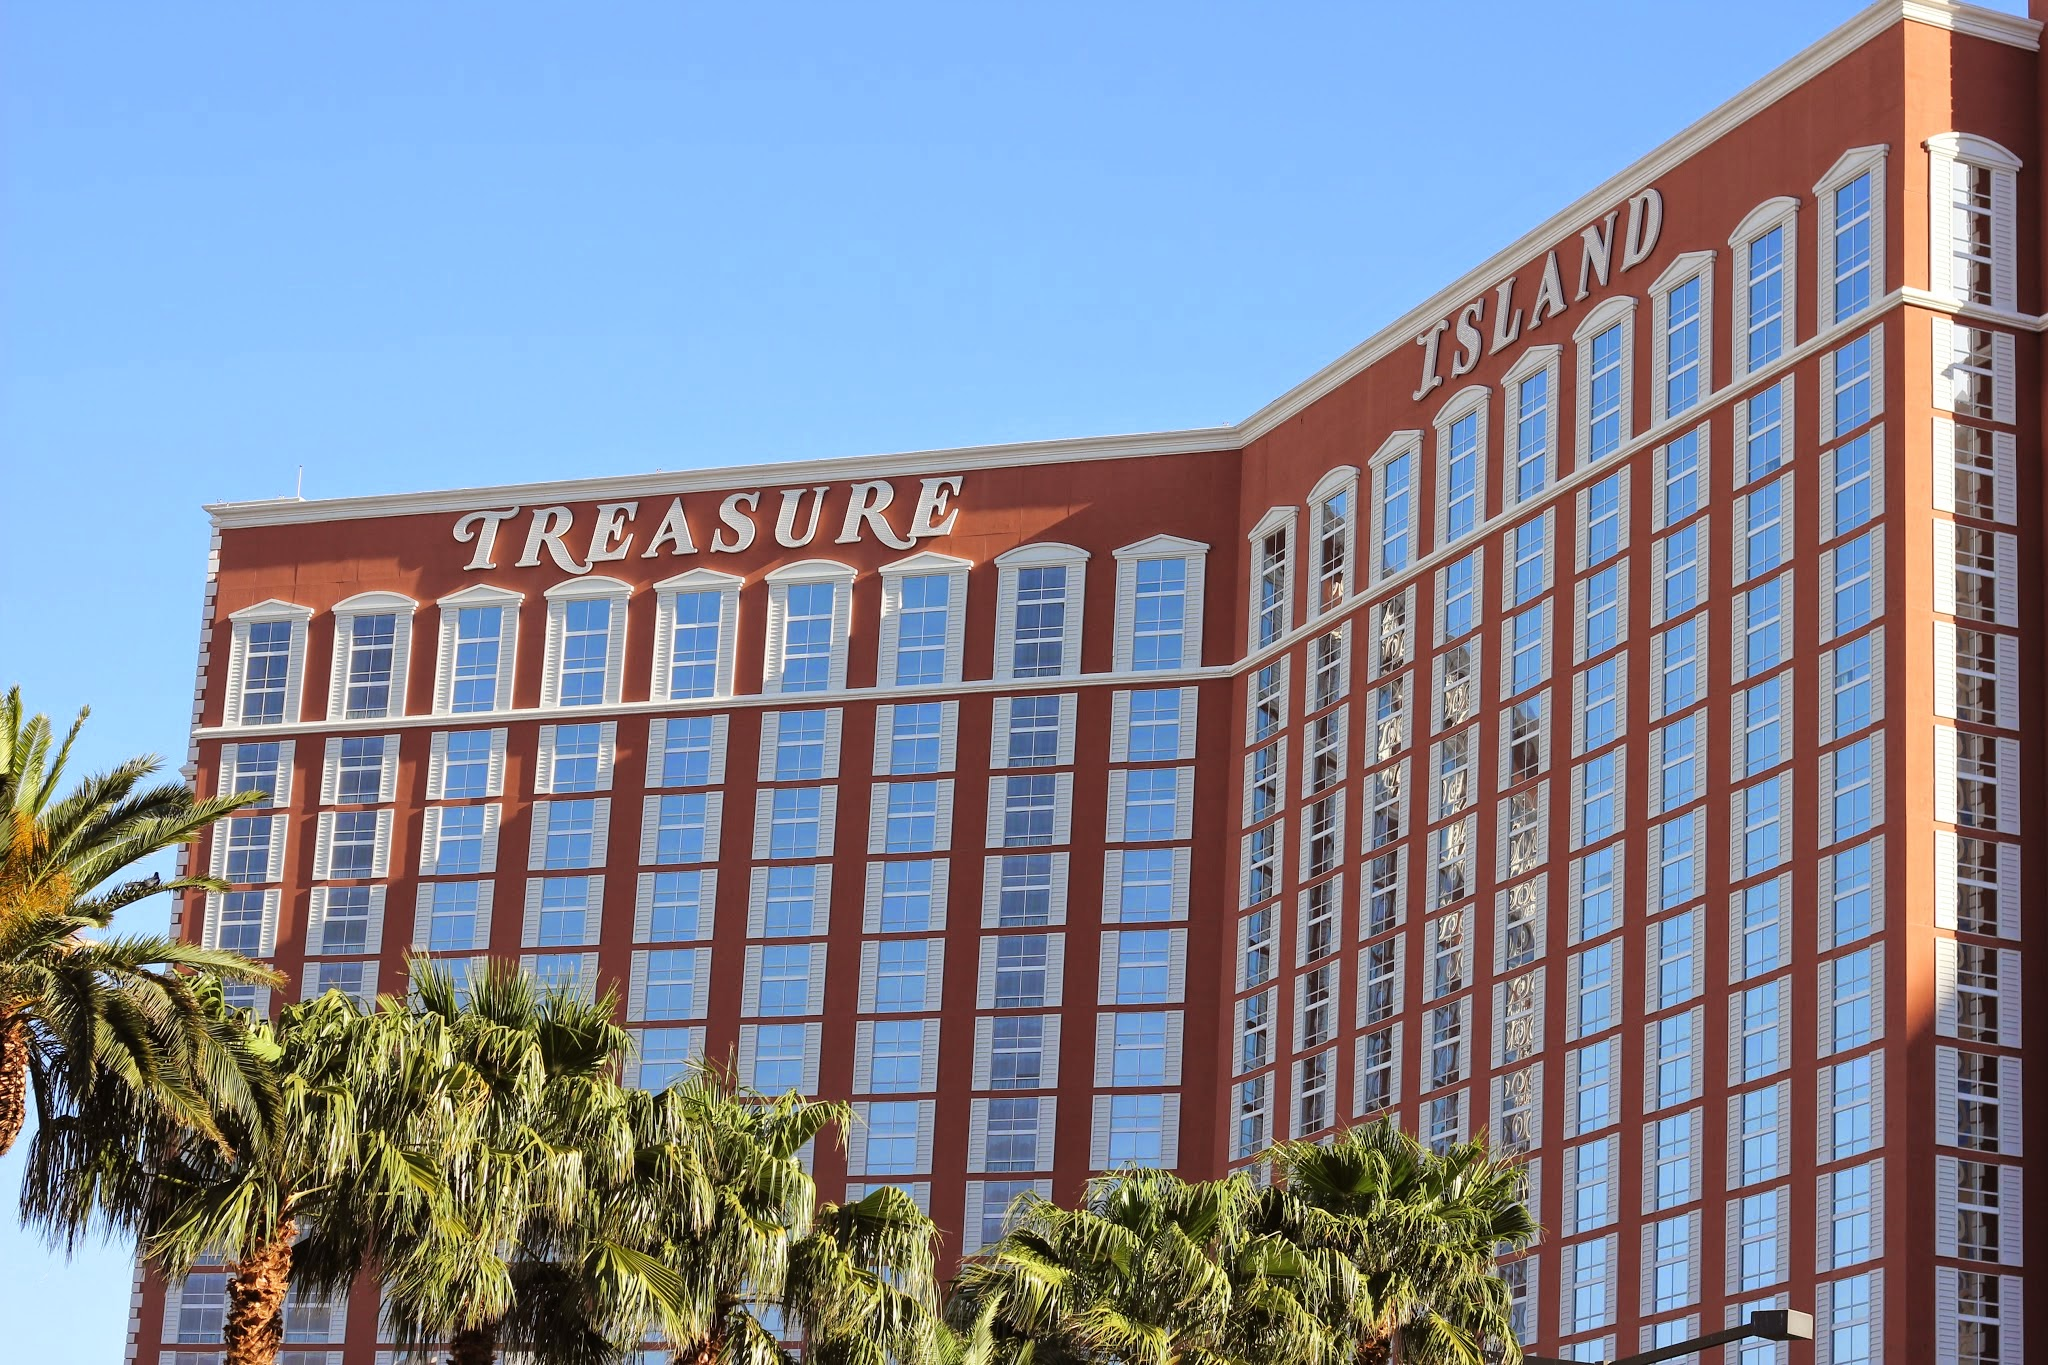 Visit Las Vegas for family travel? Treasure Island